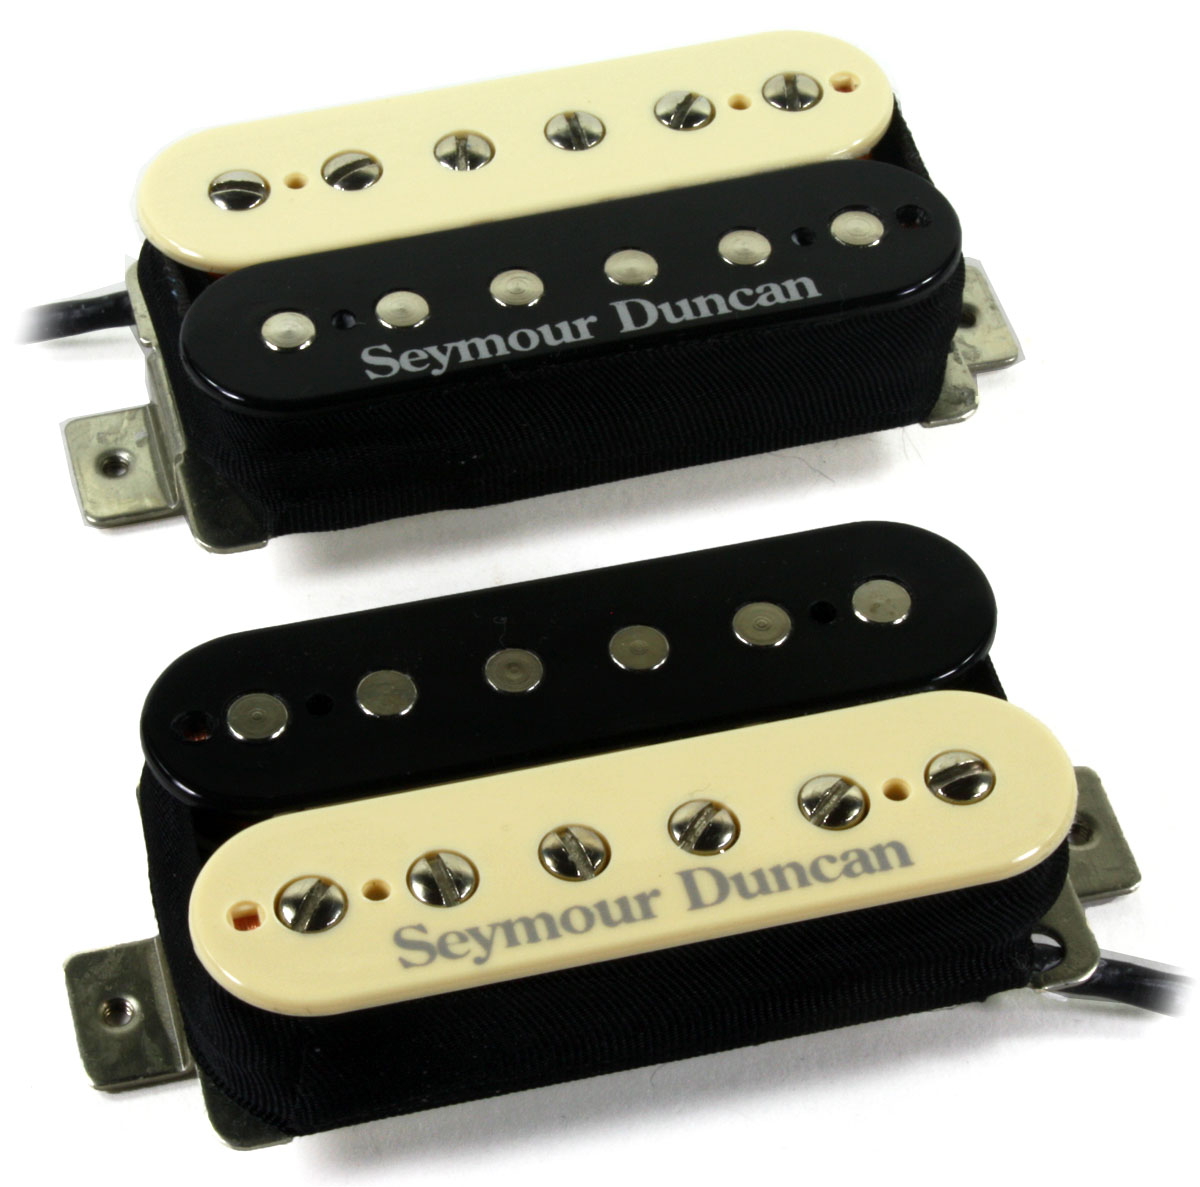 Seymour Duncan Hot Rodded Humbucker Set, SH-2n Neck and SH-4 JB ...